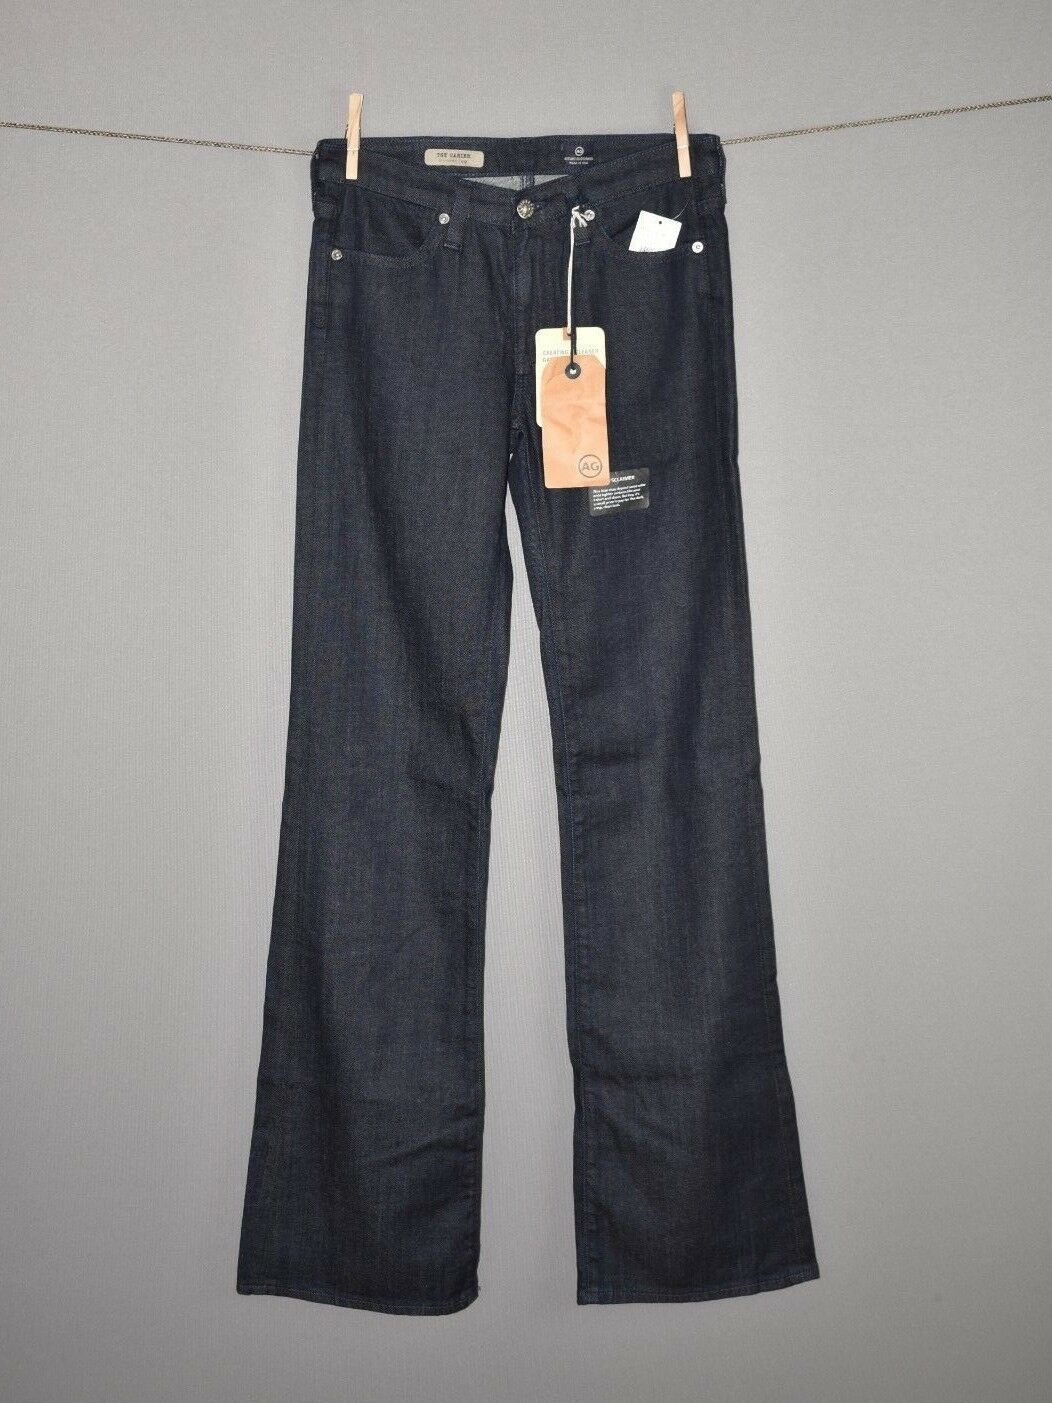 AG ADRIANO goldSCHMIED NEW  Dark Wash Carine Trouser Jean Size 26